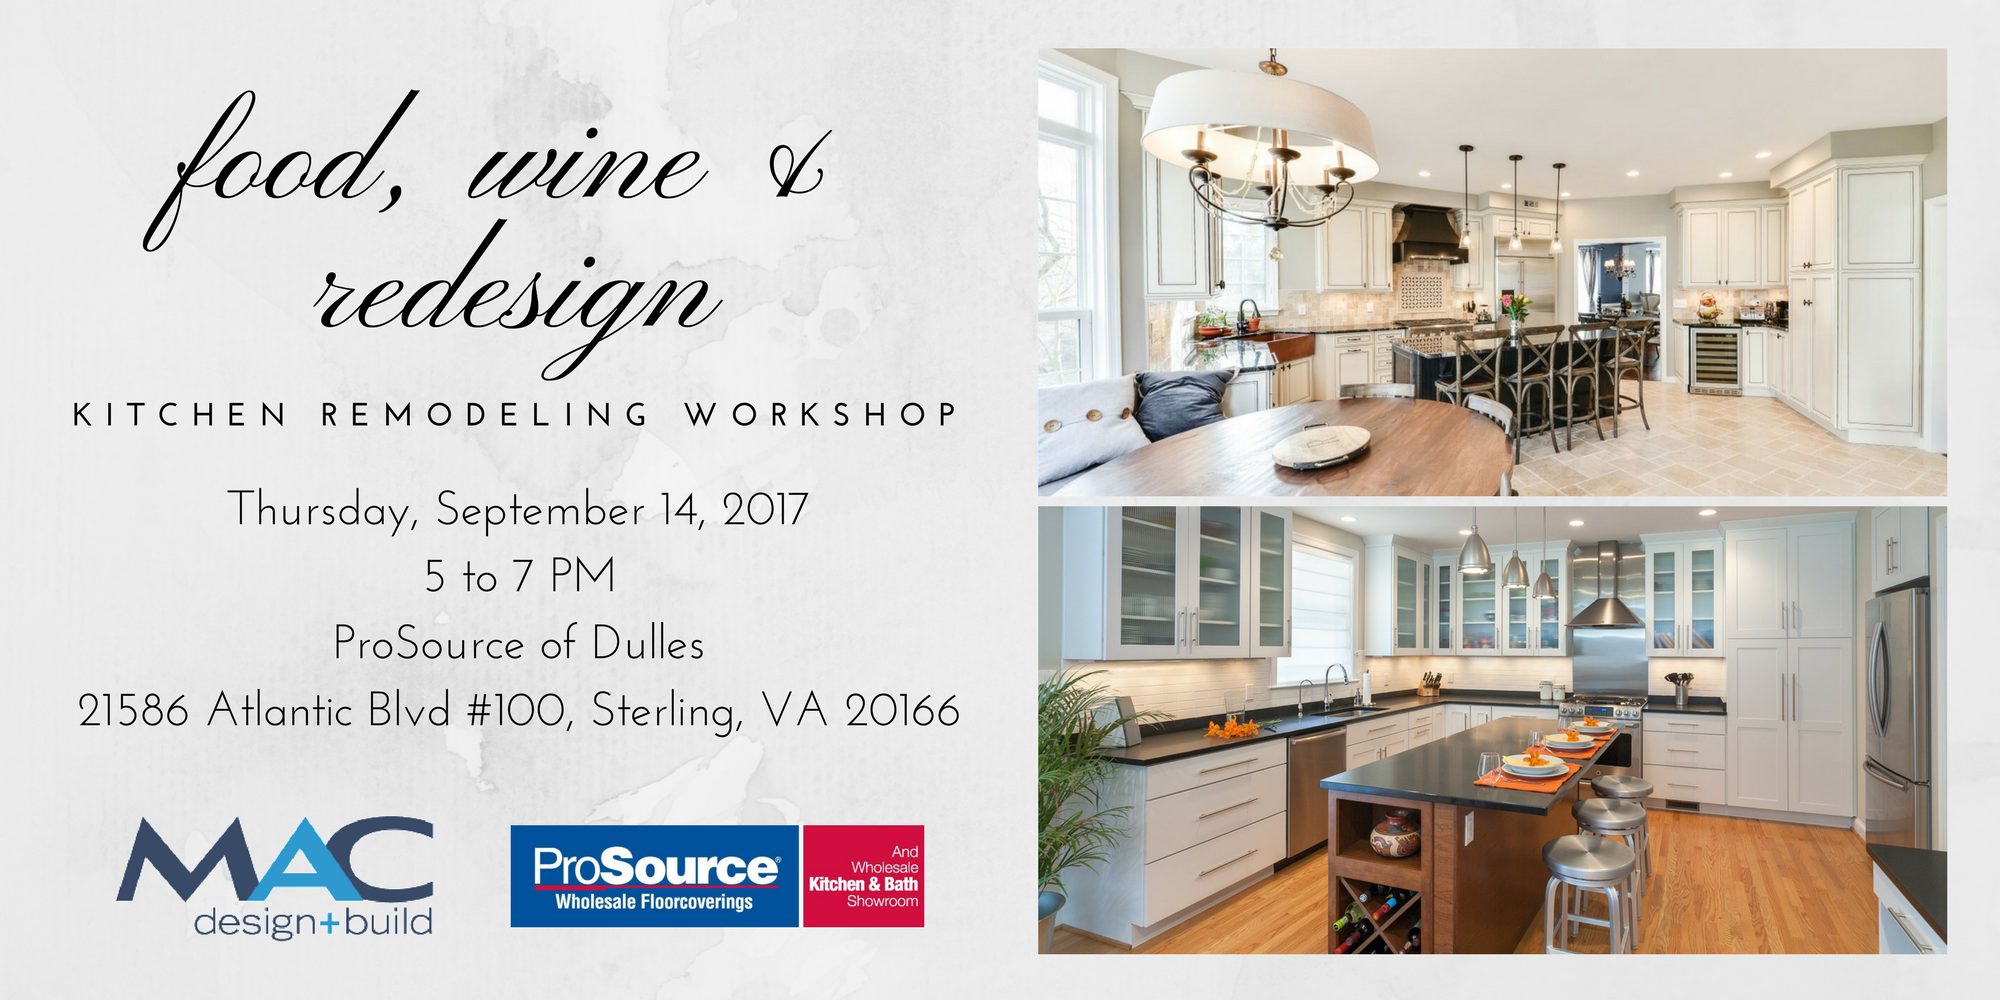 Food, Wine, and Redesign: Kitchen Remodeling Workshop photo